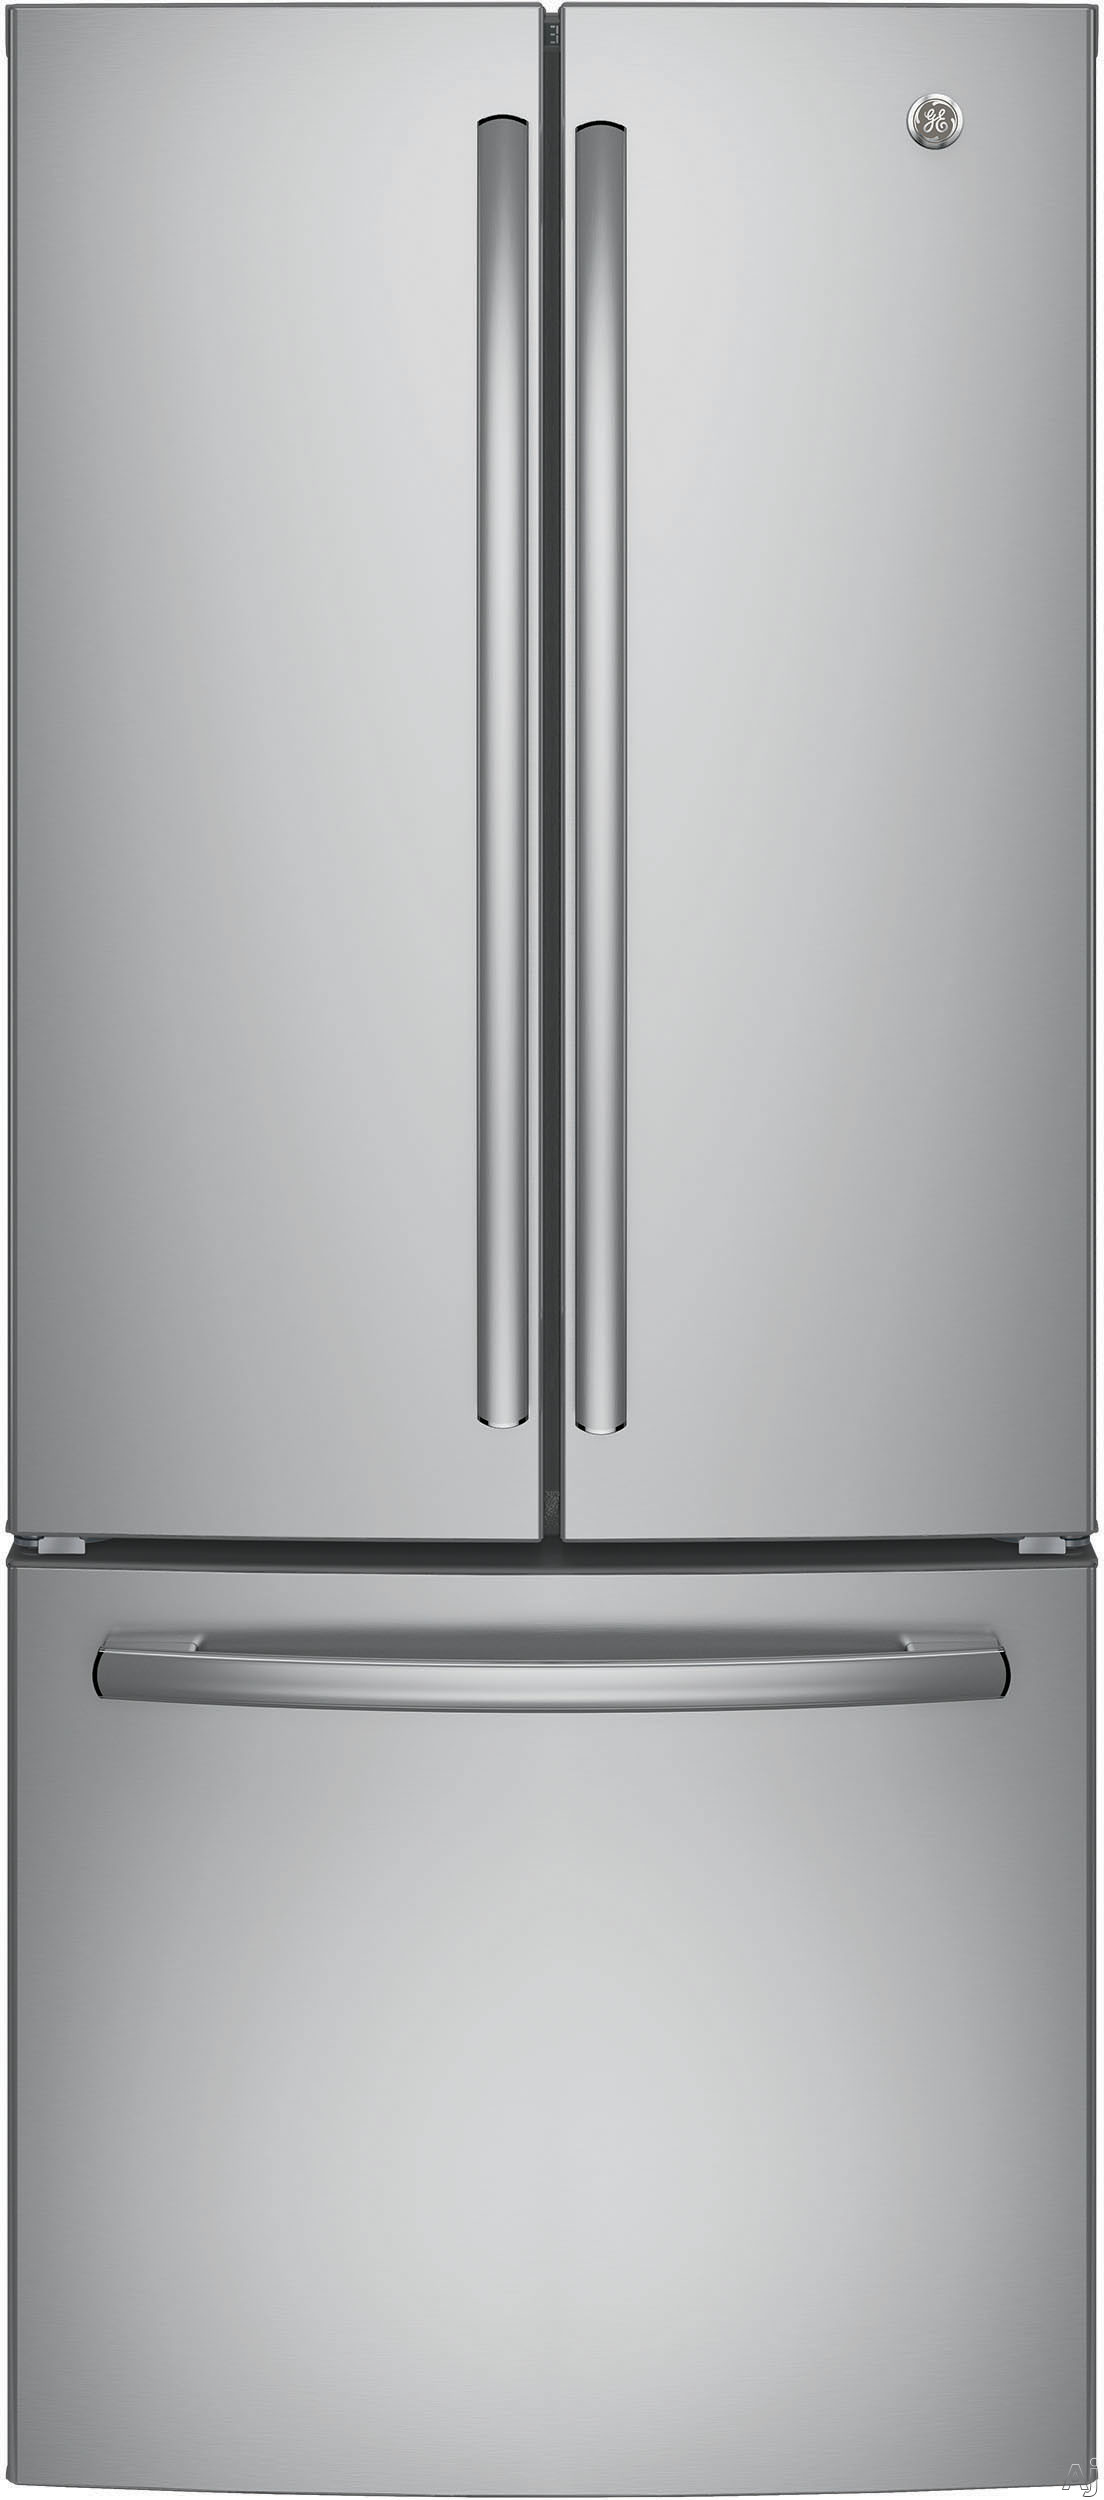 GE GNE21F 30 Inch French-Door Refrigerator with 20.8 Cu. Ft. Capacity, LED Lighting, Door Alarm, 2 Adjustable Shelves, 2 Humidity Controlled Drawers, 1 Adjustable Temperature Drawer, 8 Door Bins, 2 Freezer Drawers, Icemaker and Energy Star Qualified